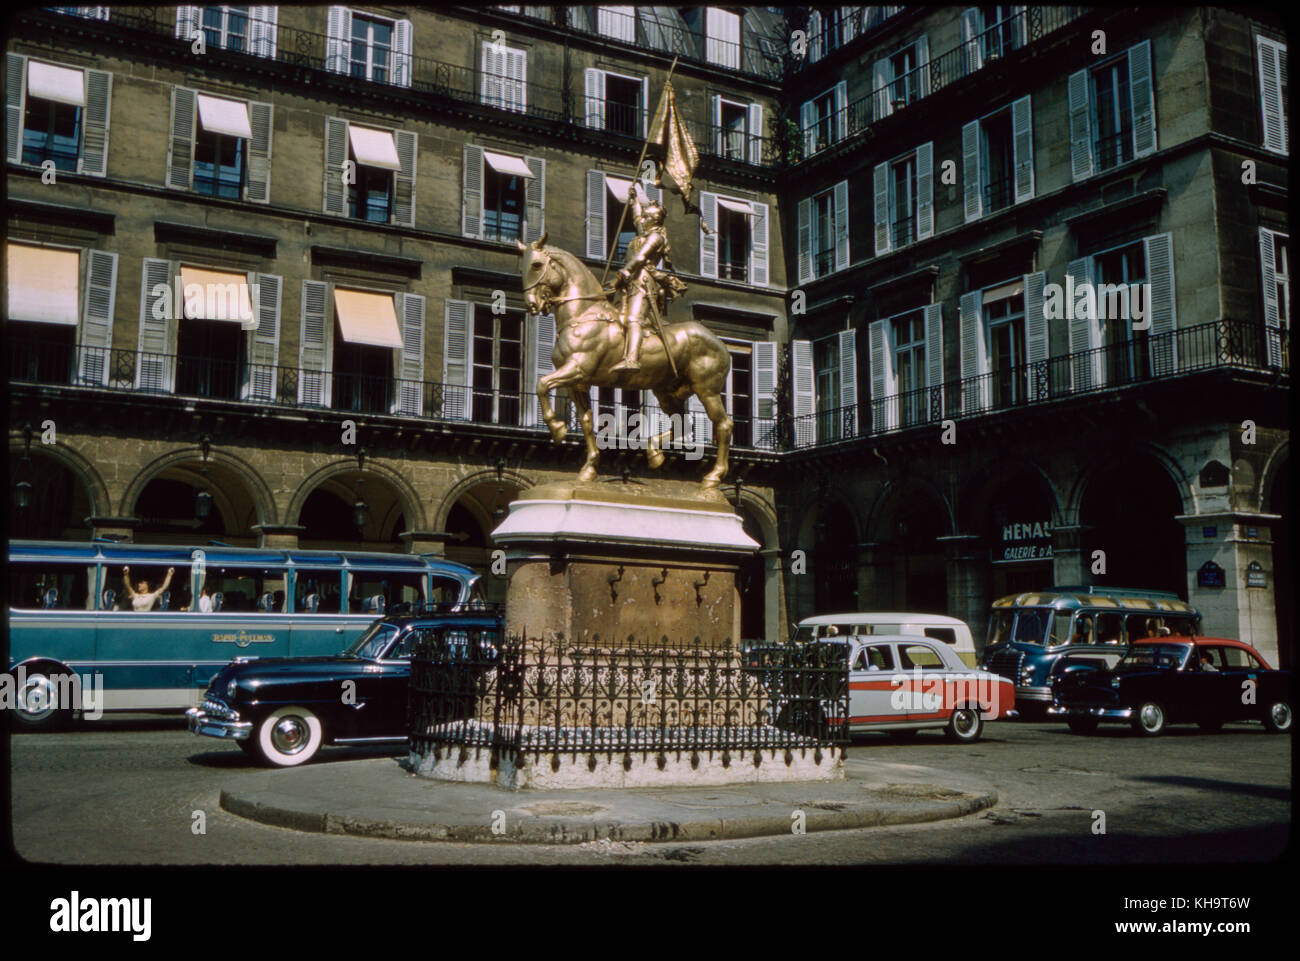 Jeanne d'Arc Sculpture, Place des Pyramides, Paris, France, 1961 - Stock Image